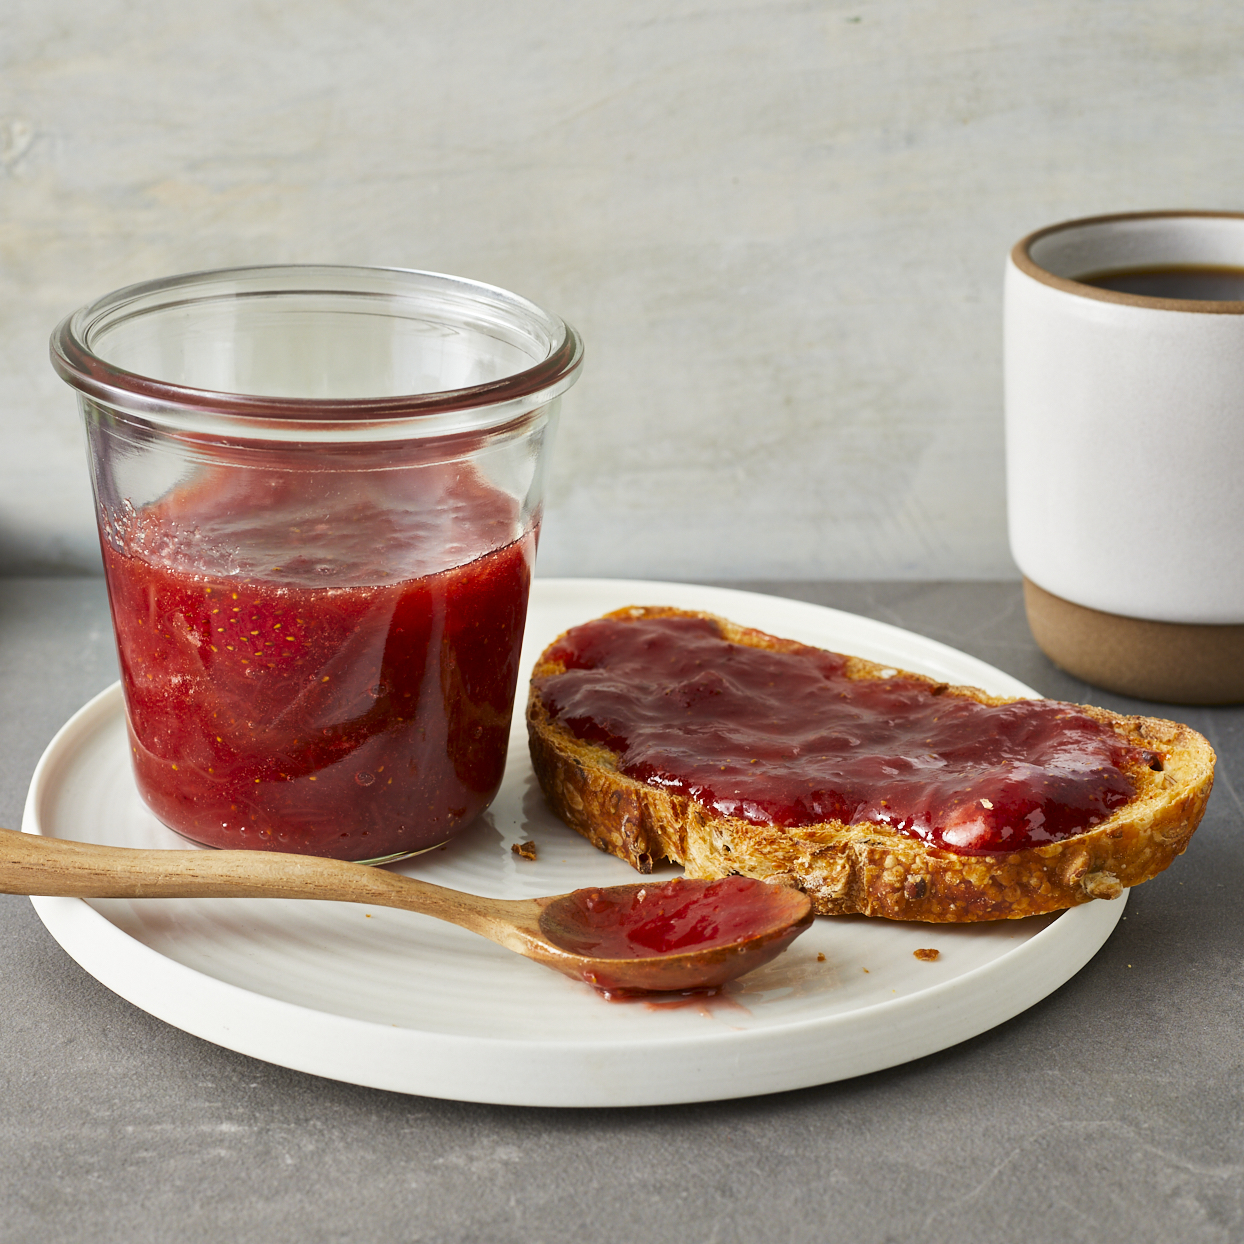 Tart rhubarb and sweet strawberries shine together in this easy strawberry-rhubarb jam. There's no canning involved and with fresh in-season strawberries, added sugar stays in check.